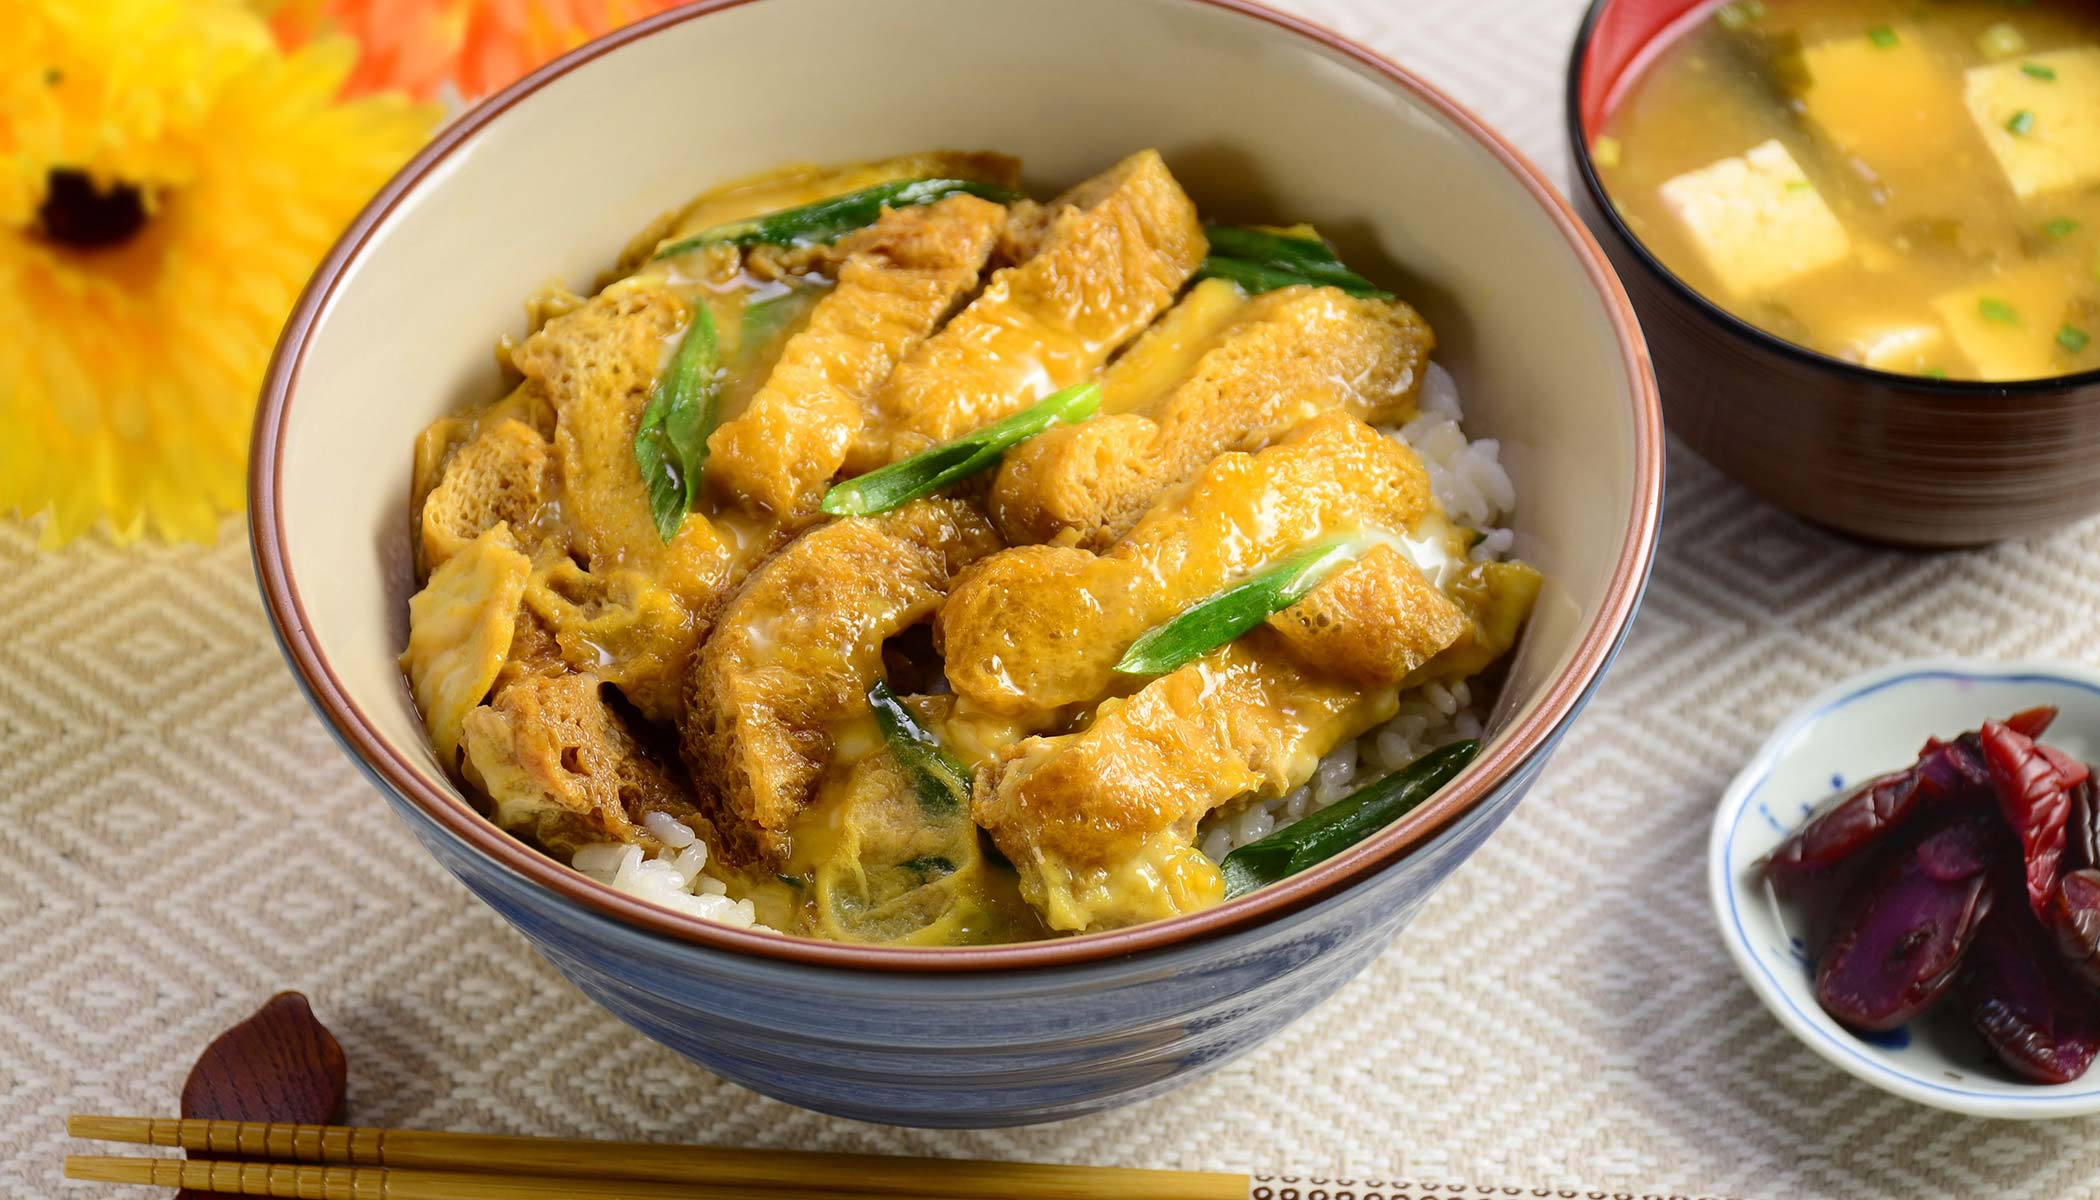 <i>Kitsune-Donburi</i> (Fried Bean Curd and Egg Bowl)